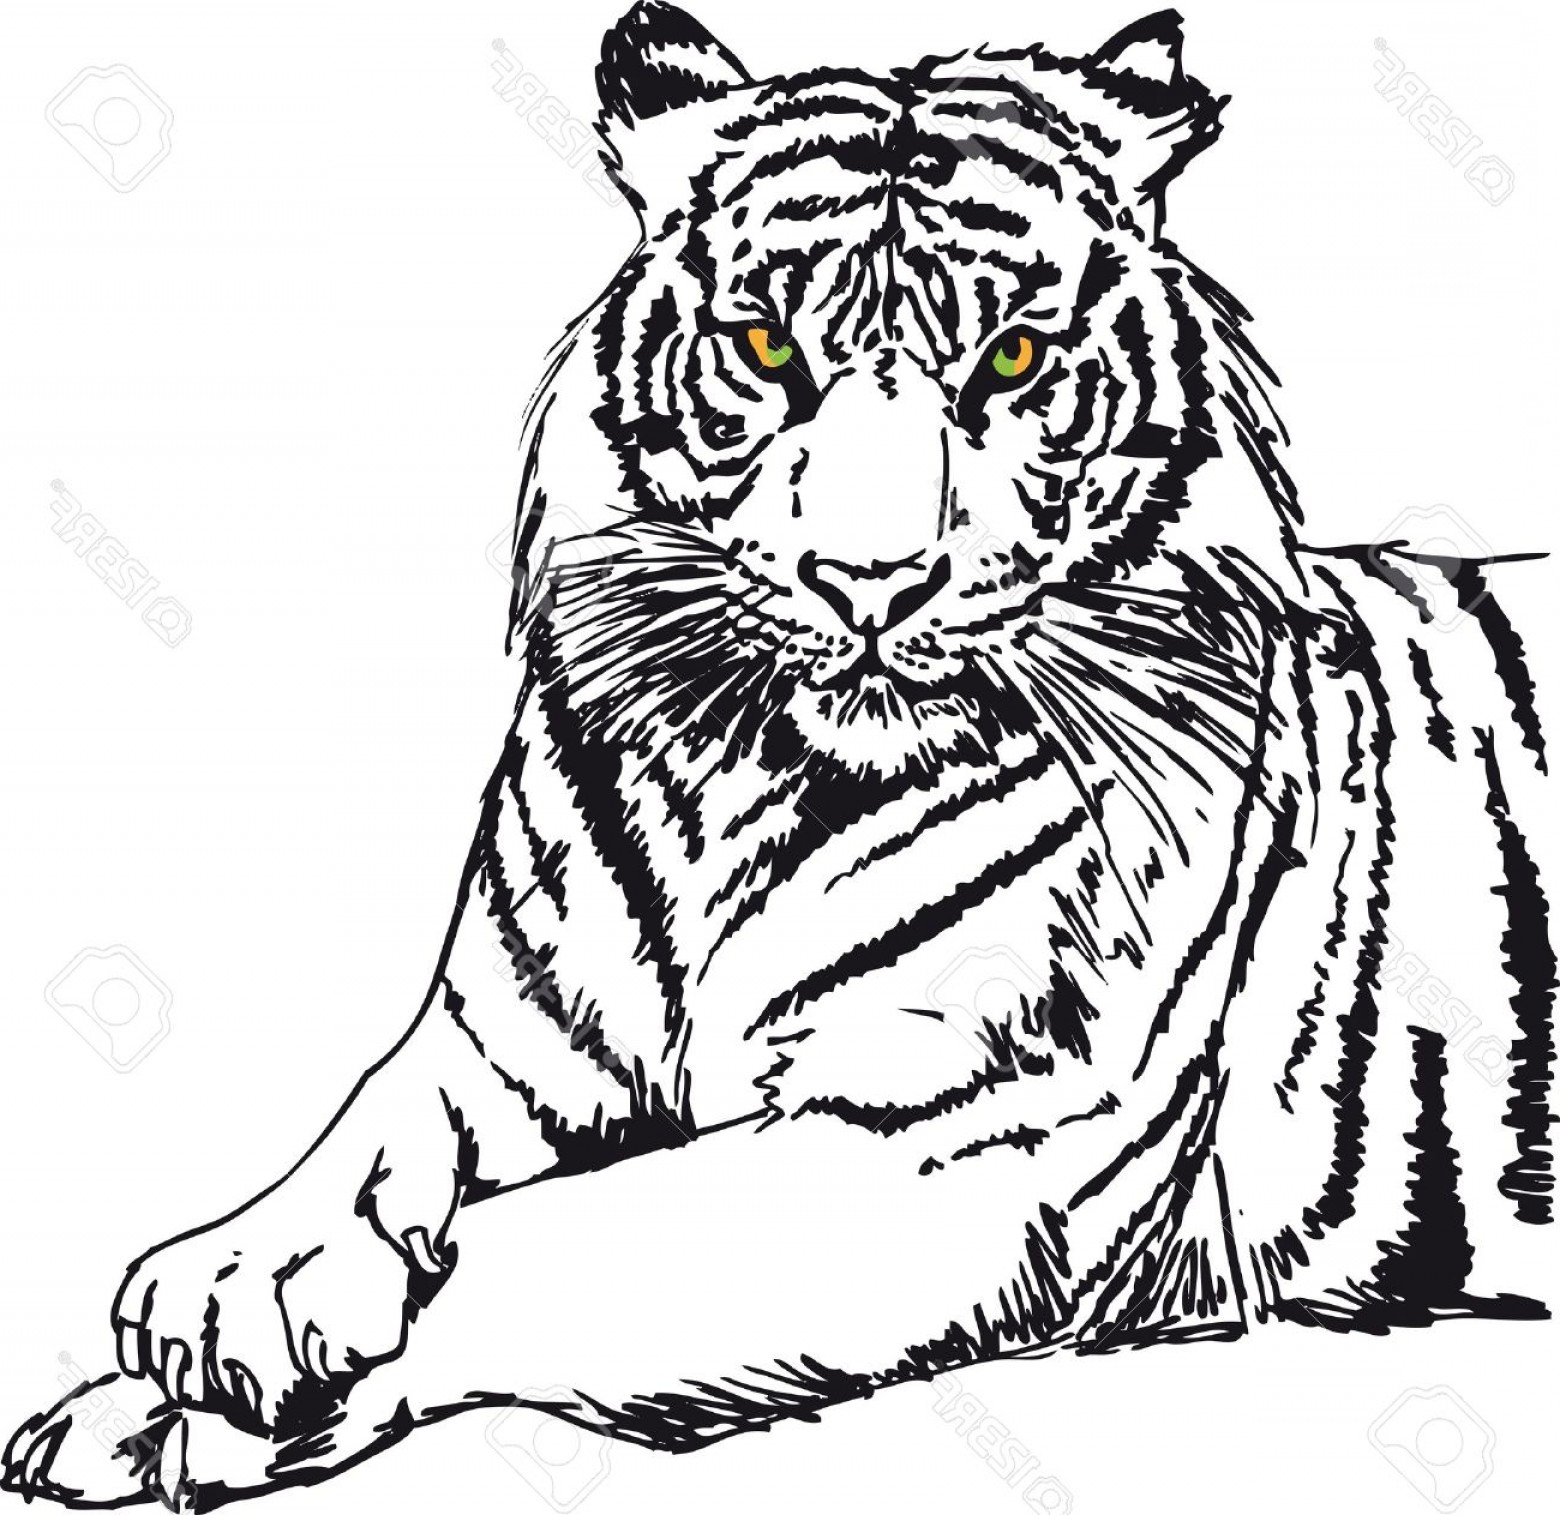 1560x1515 Photosketch Of White Tiger Vector Illustration Sohadacouri